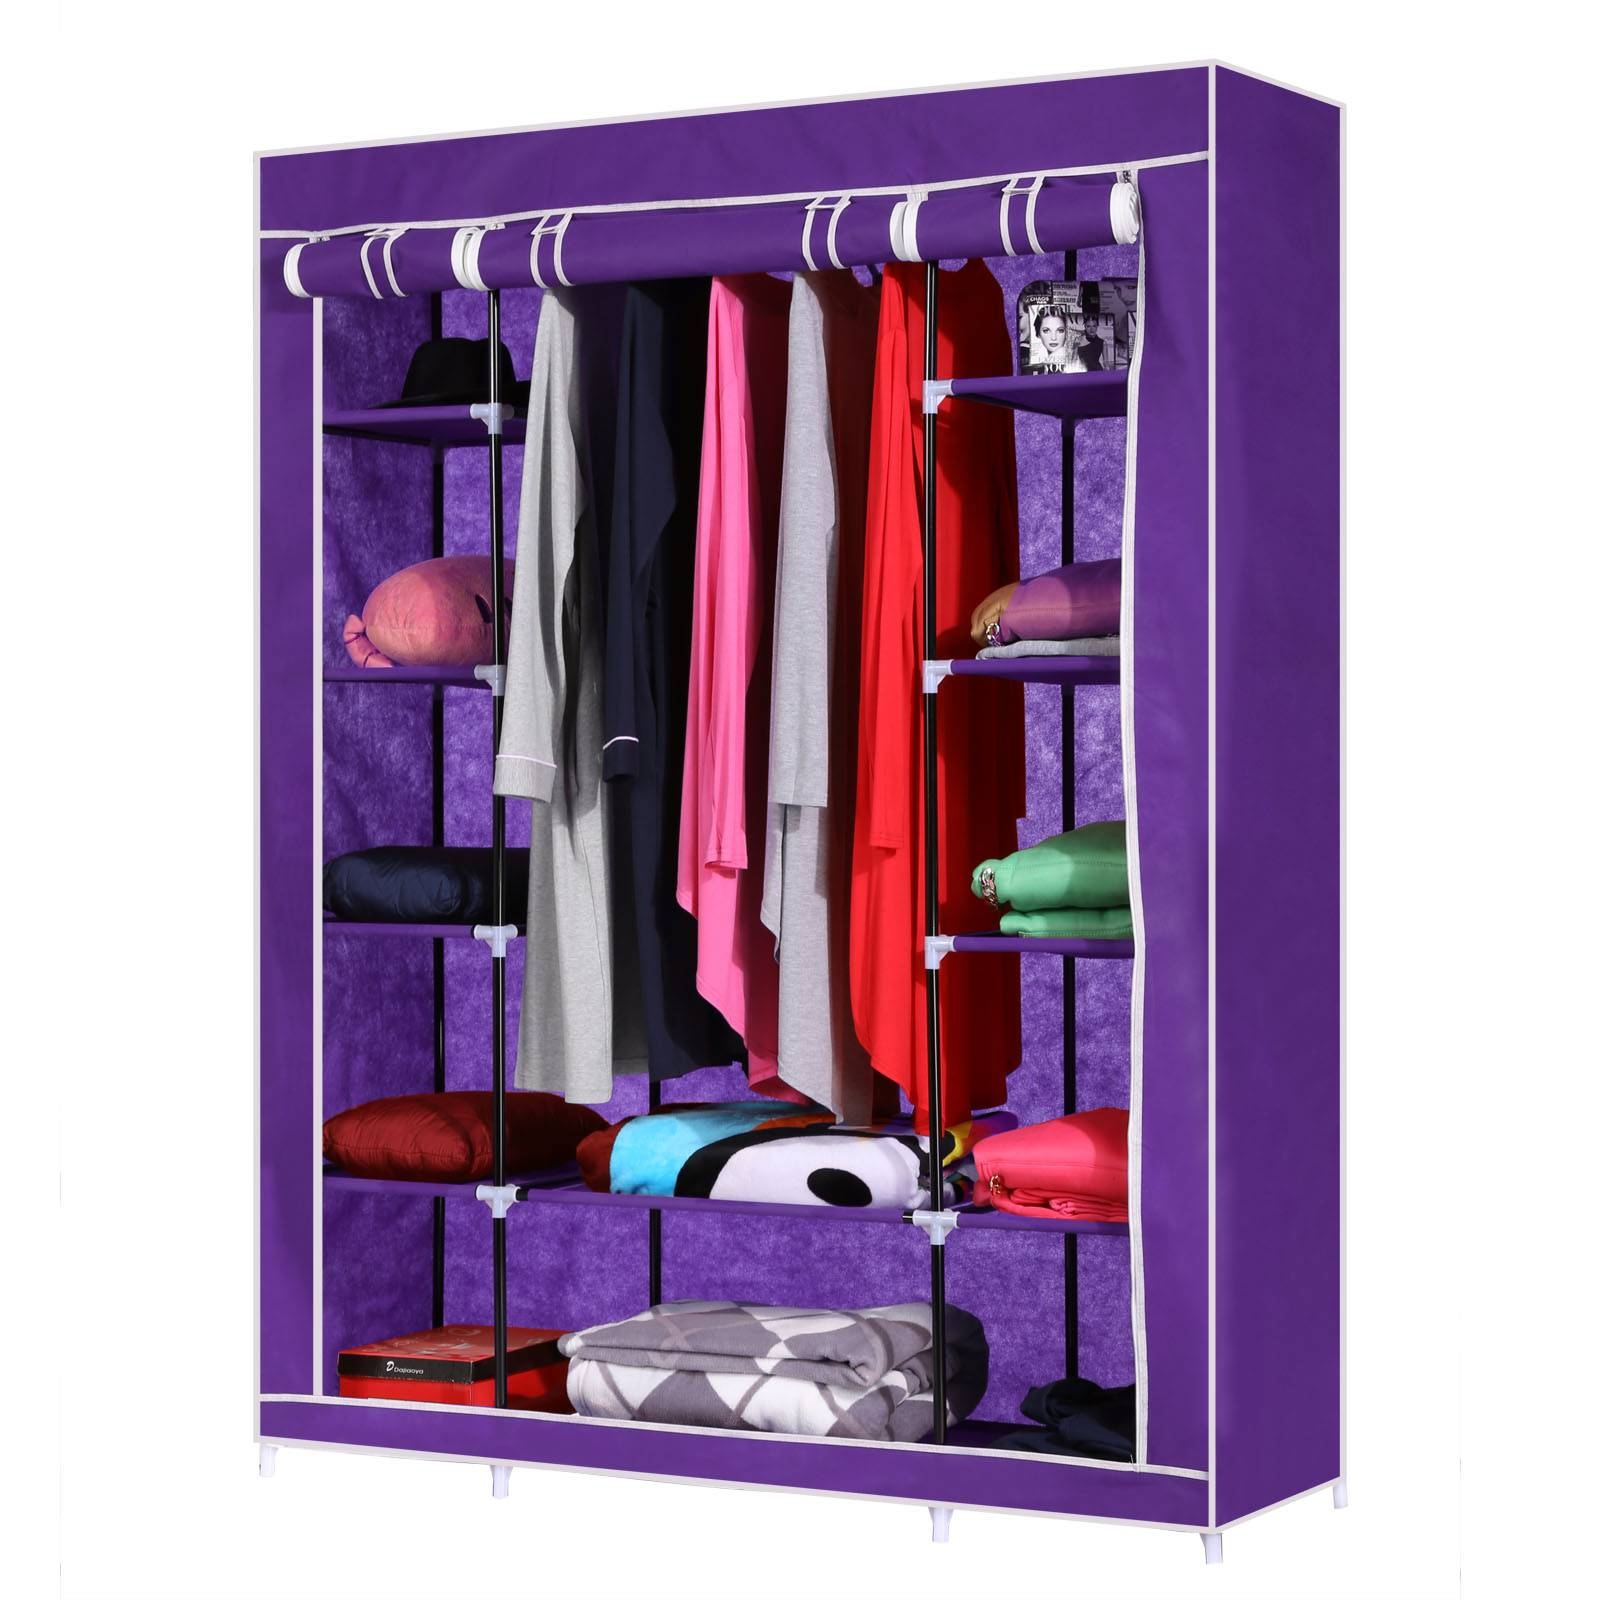 Aliexpress : Buy Homdox Non Woven Wardrobe Combination throughout Cheap Double Wardrobes (Image 1 of 15)